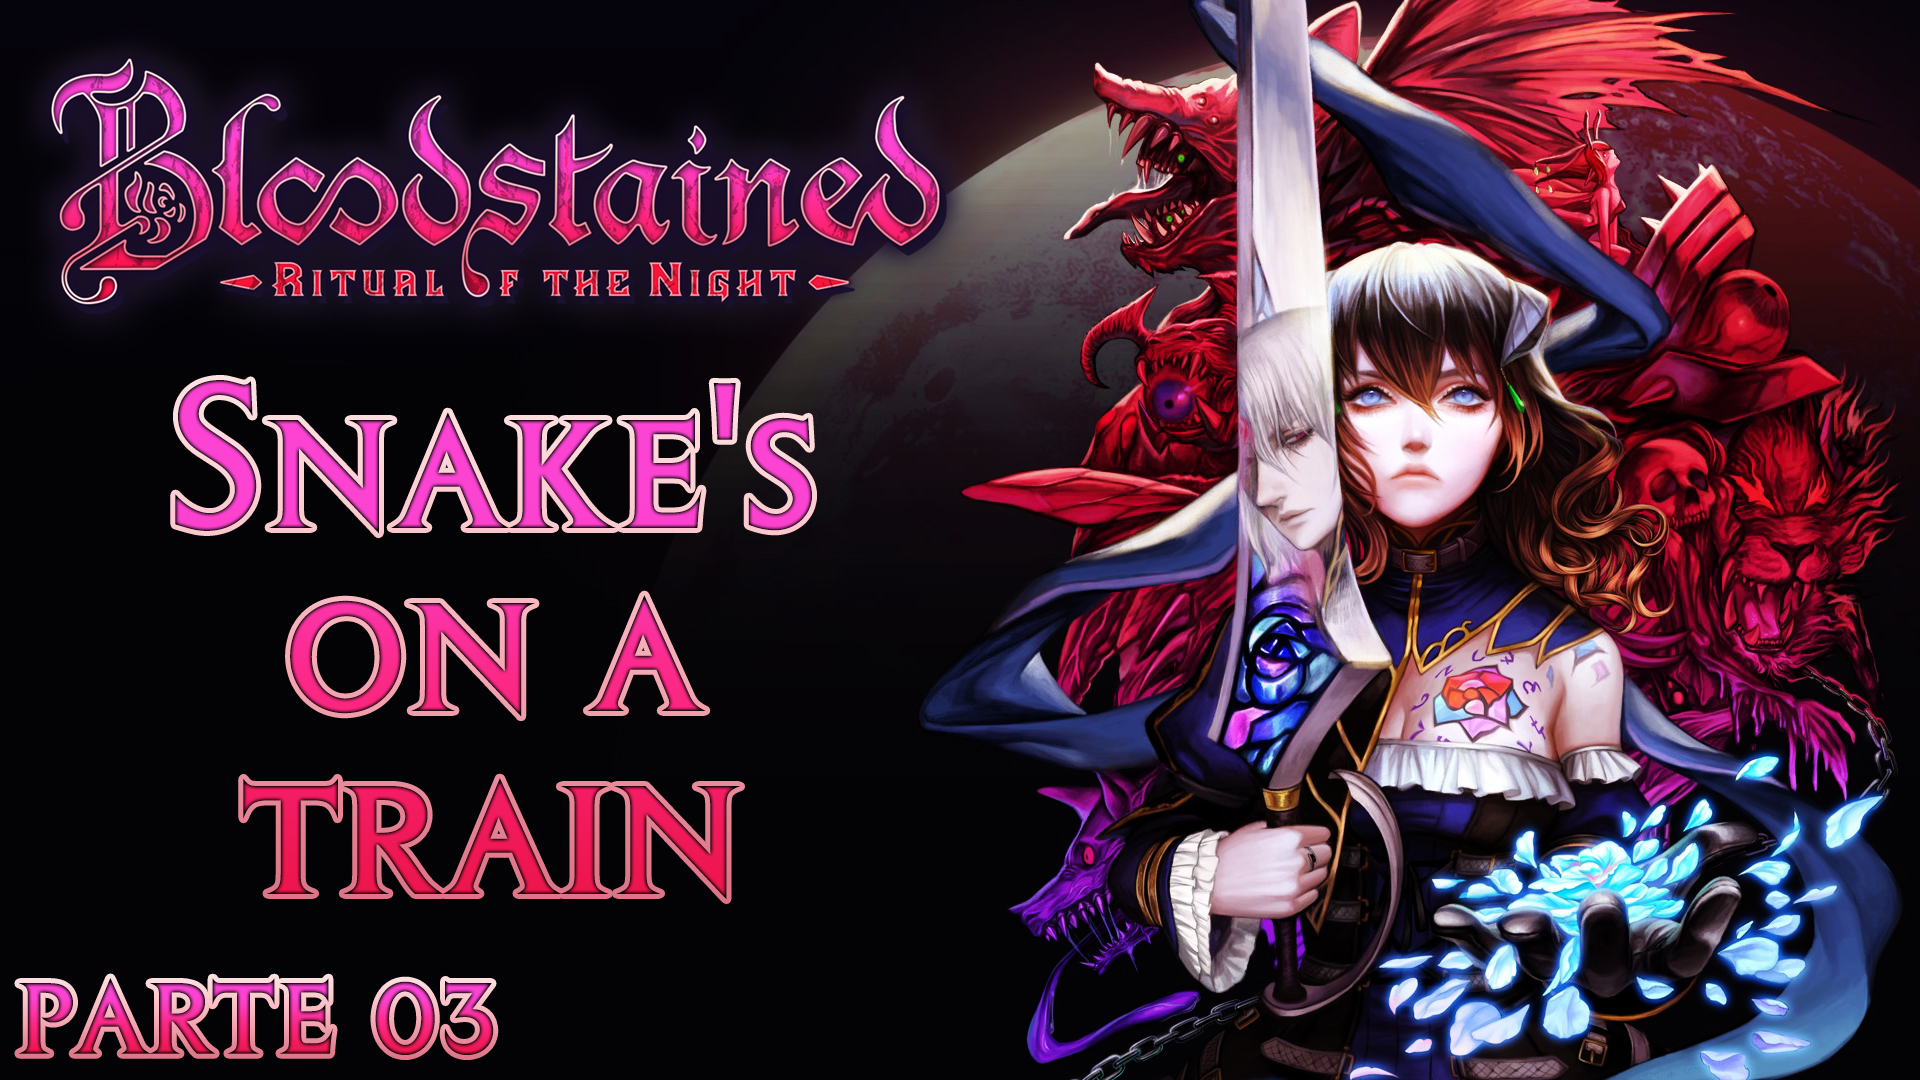 Serie Bloodstained Ritual of the Night #3 -Snakes's on a train